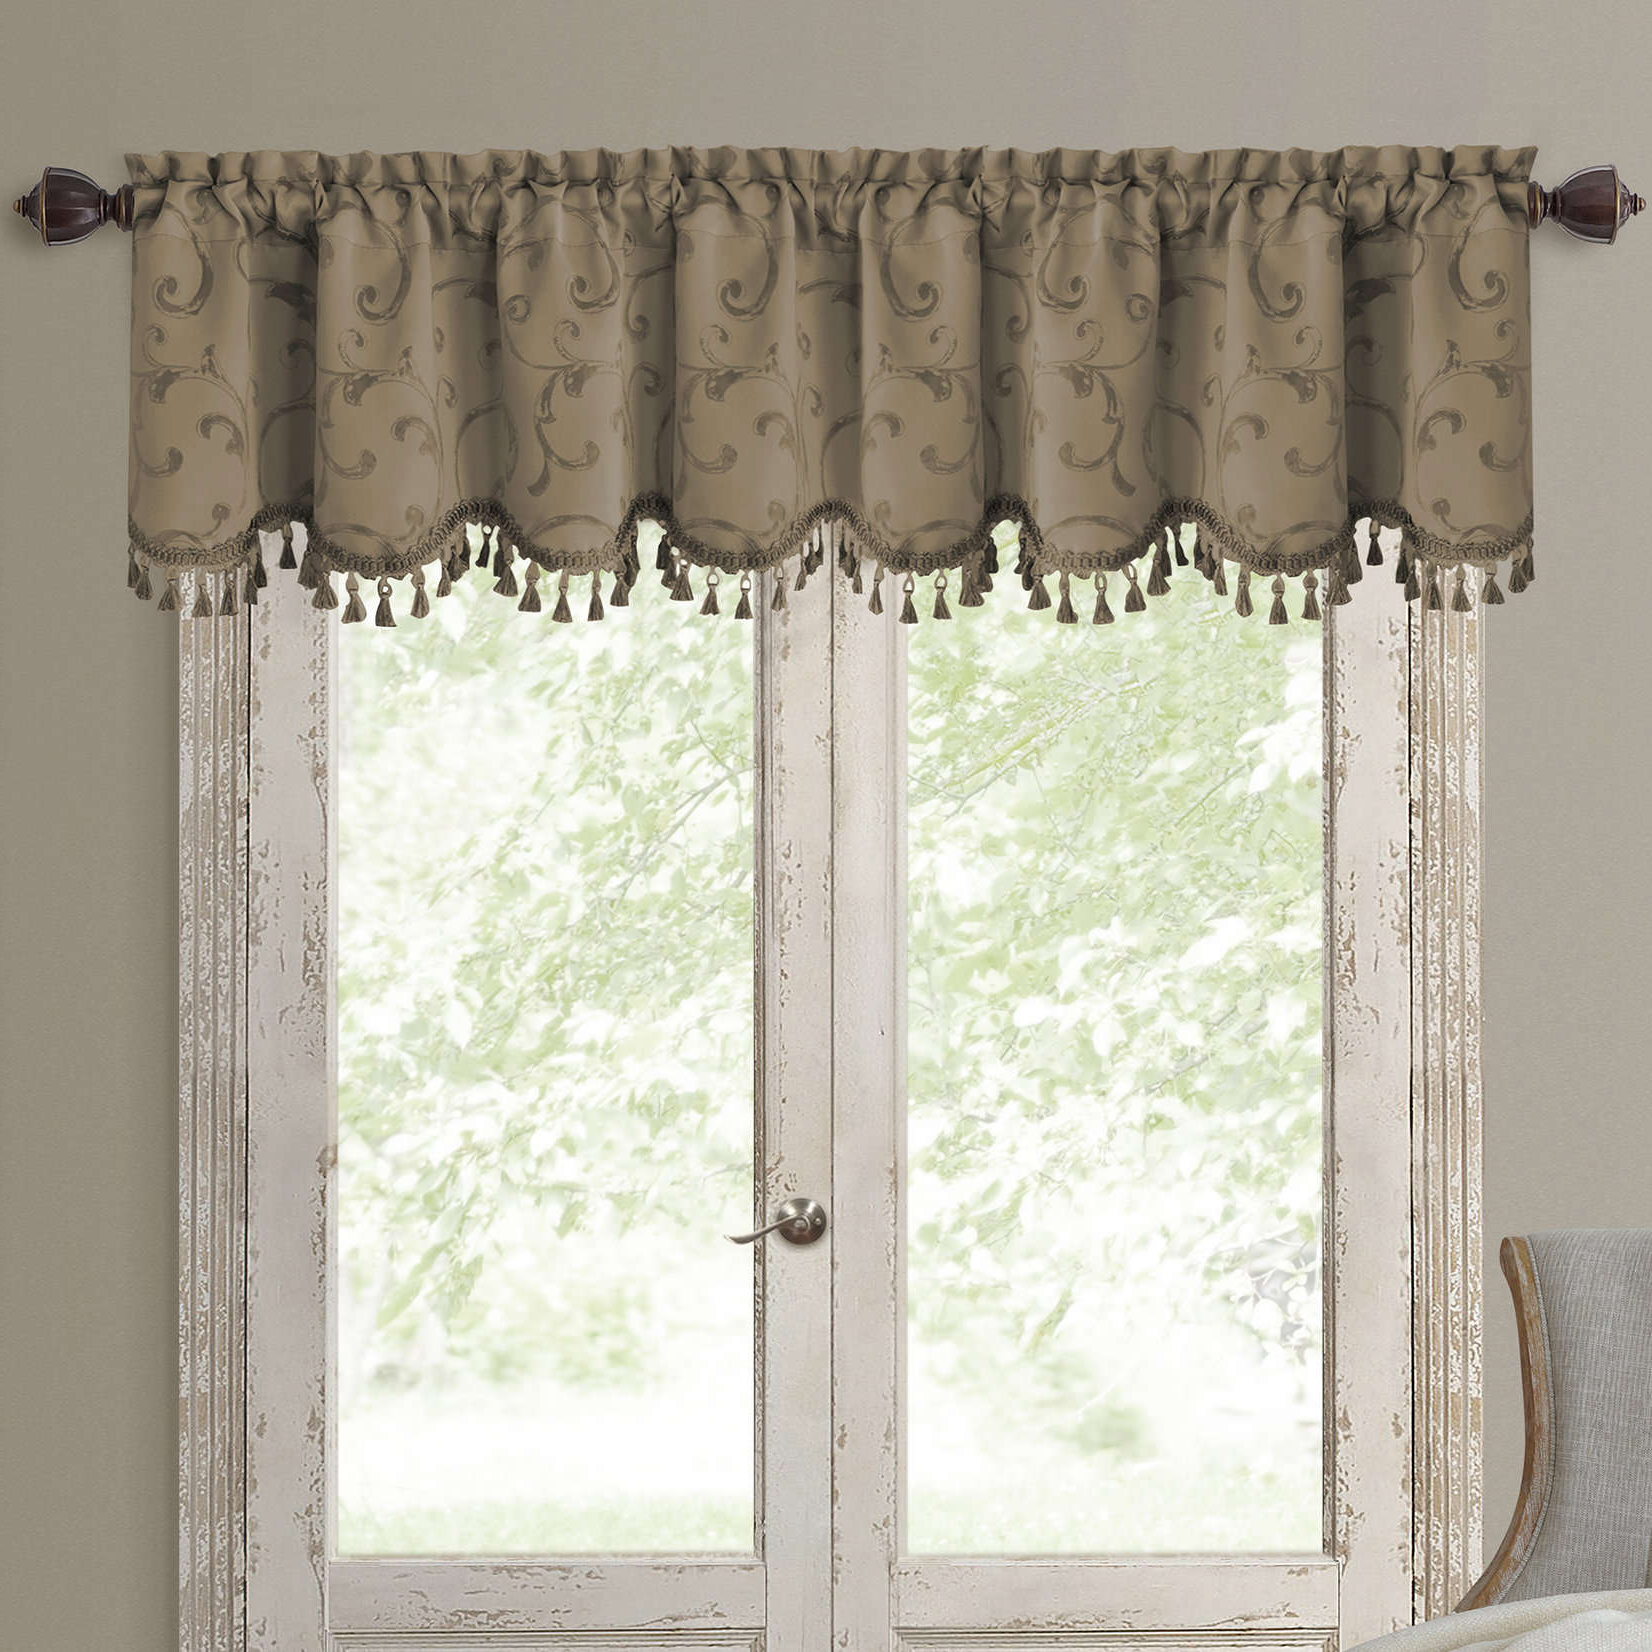 Charming Valance Curtains Interior Enchanting Black And Within Widely Used Luxurious Kitchen Curtains Tiers, Shade Or Valances (View 11 of 20)